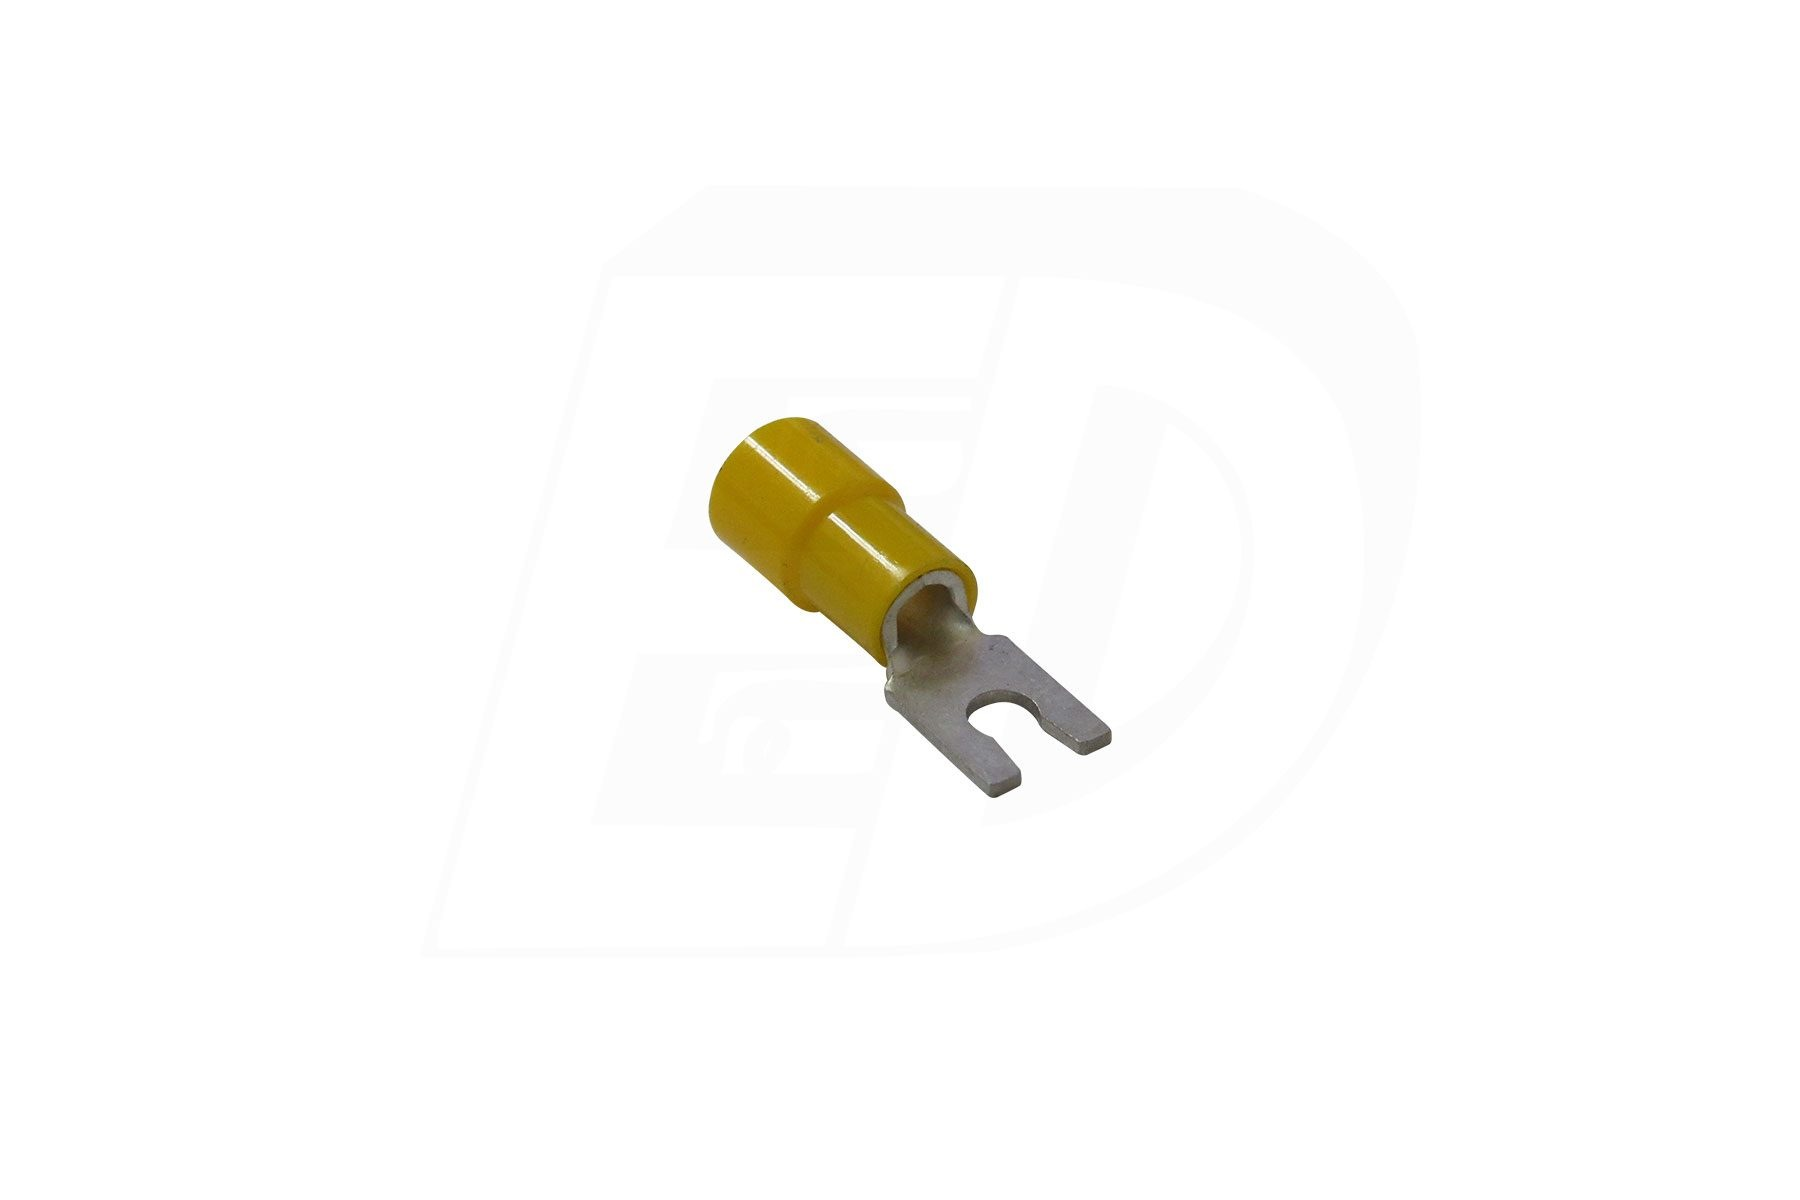 Vinyl Insulated Locking Spade Terminal with Funnel Entry 12 - 10 AWG